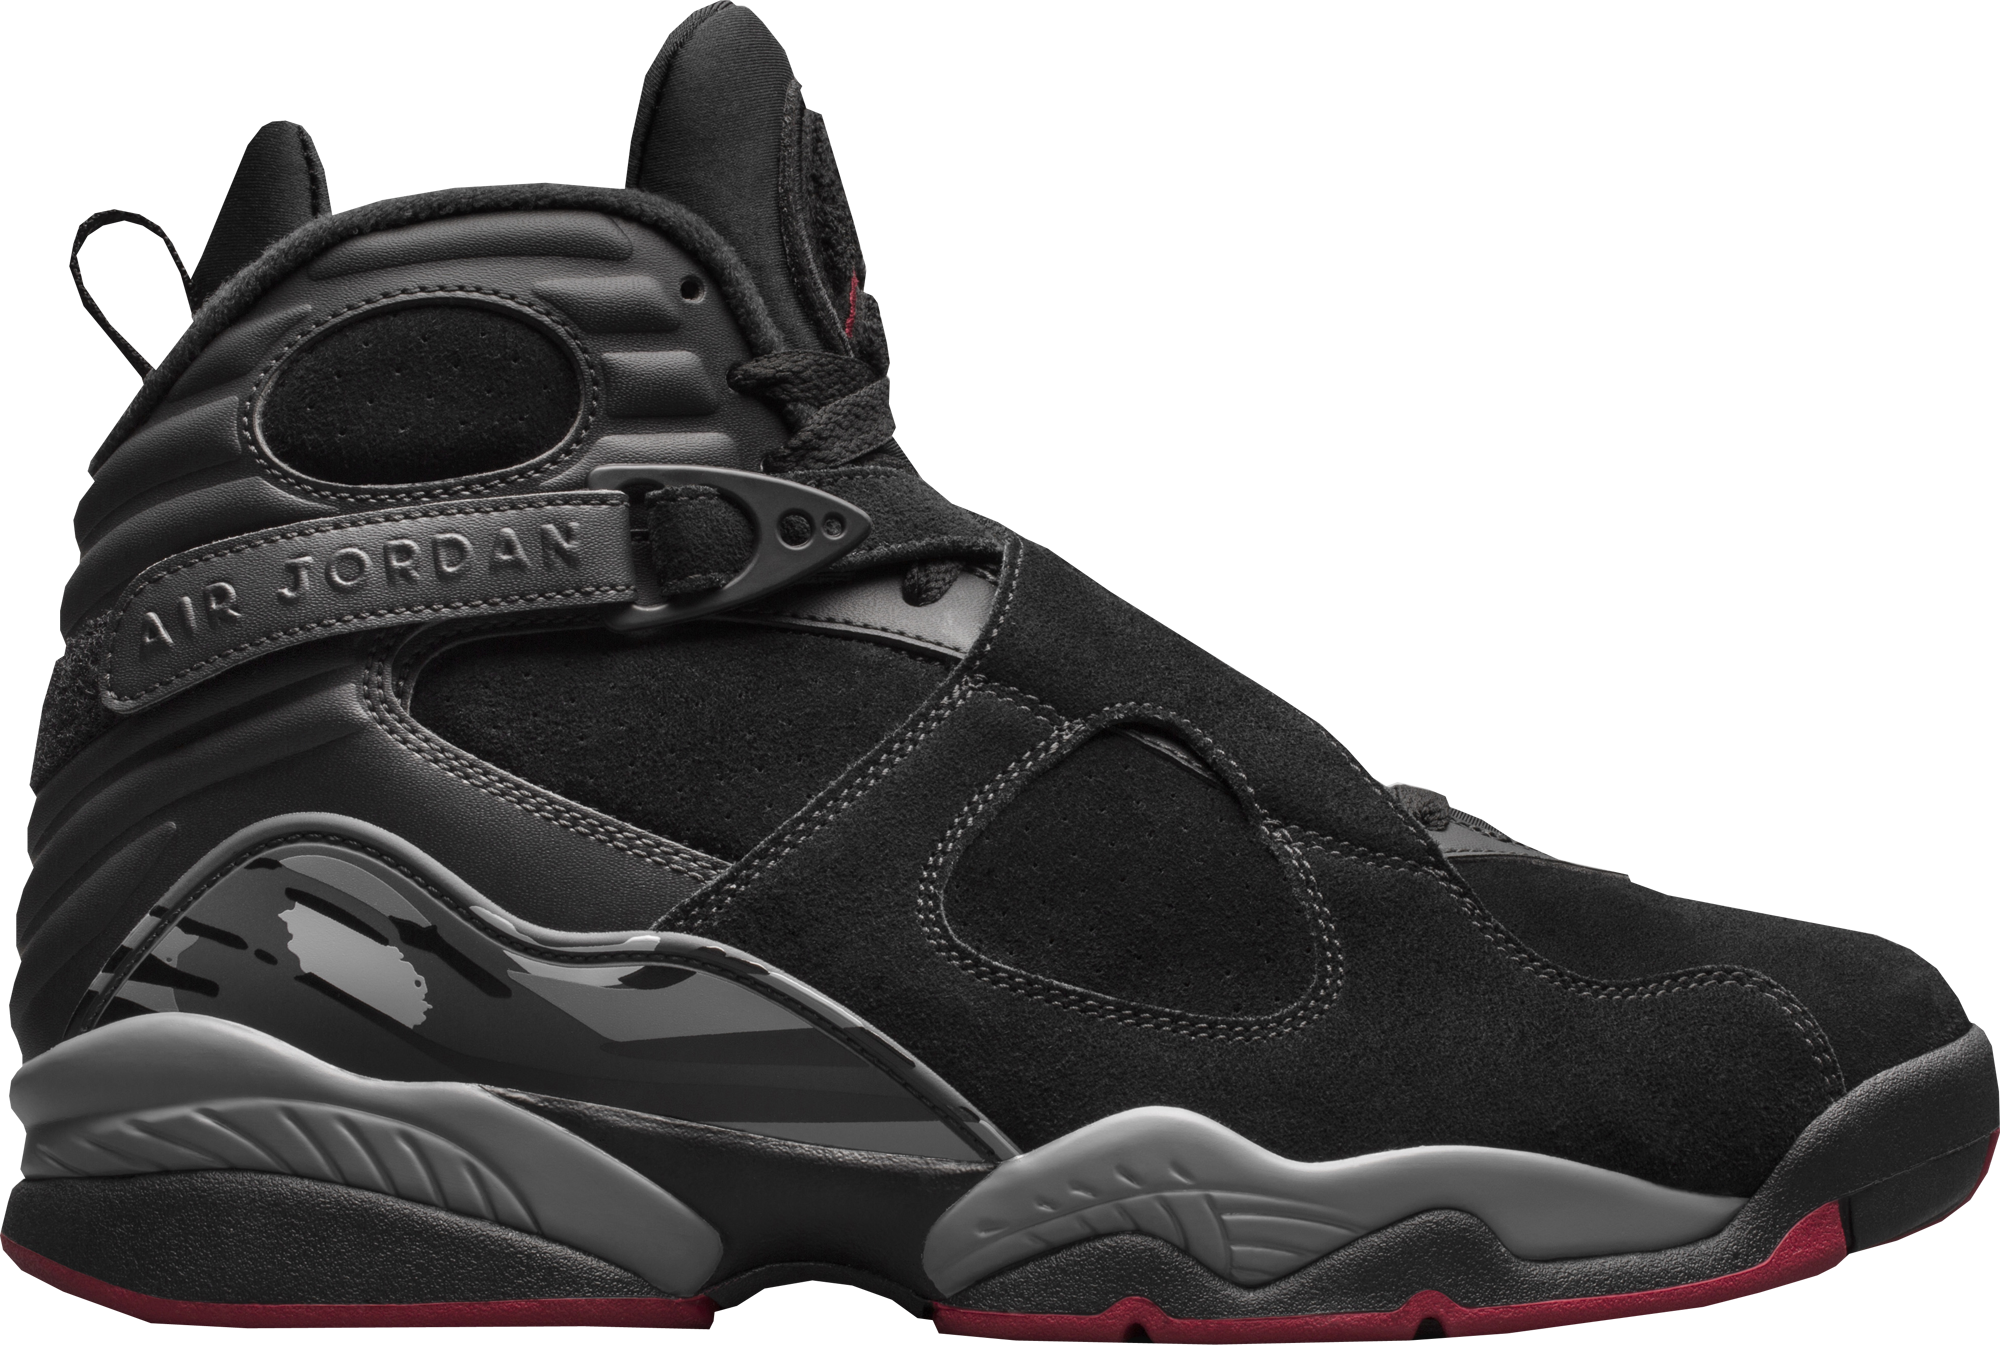 Jordan 8 Retro Black Cement